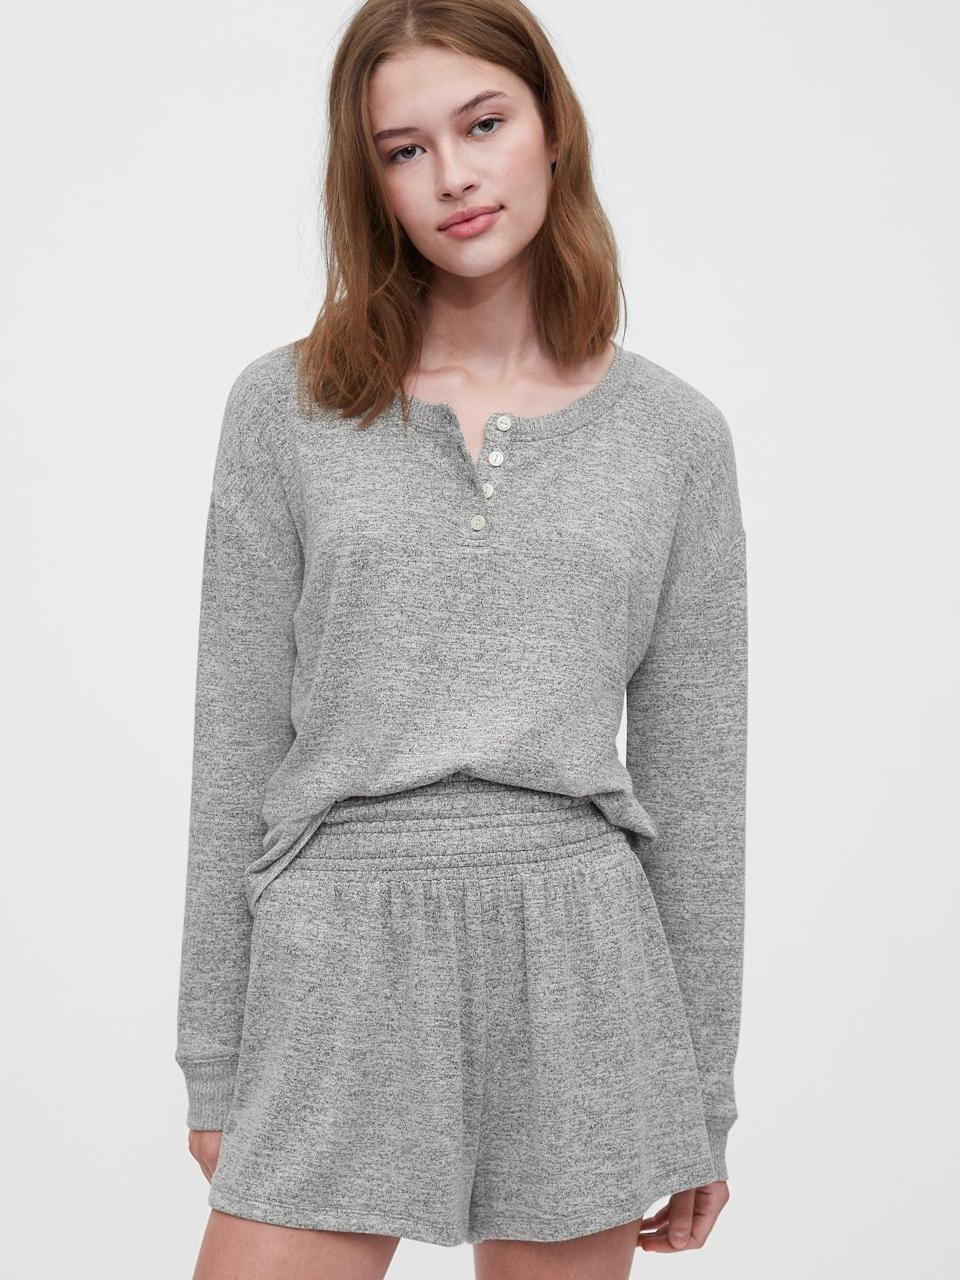 <p>Slightly cropped, this <span>Gap Softspun Henley Top</span> ($32, originally $45) is perfect for a relaxed look and if you have a shorter torso. Wear it to sleep or tucked into your favorite high-waisted jeans!</p>